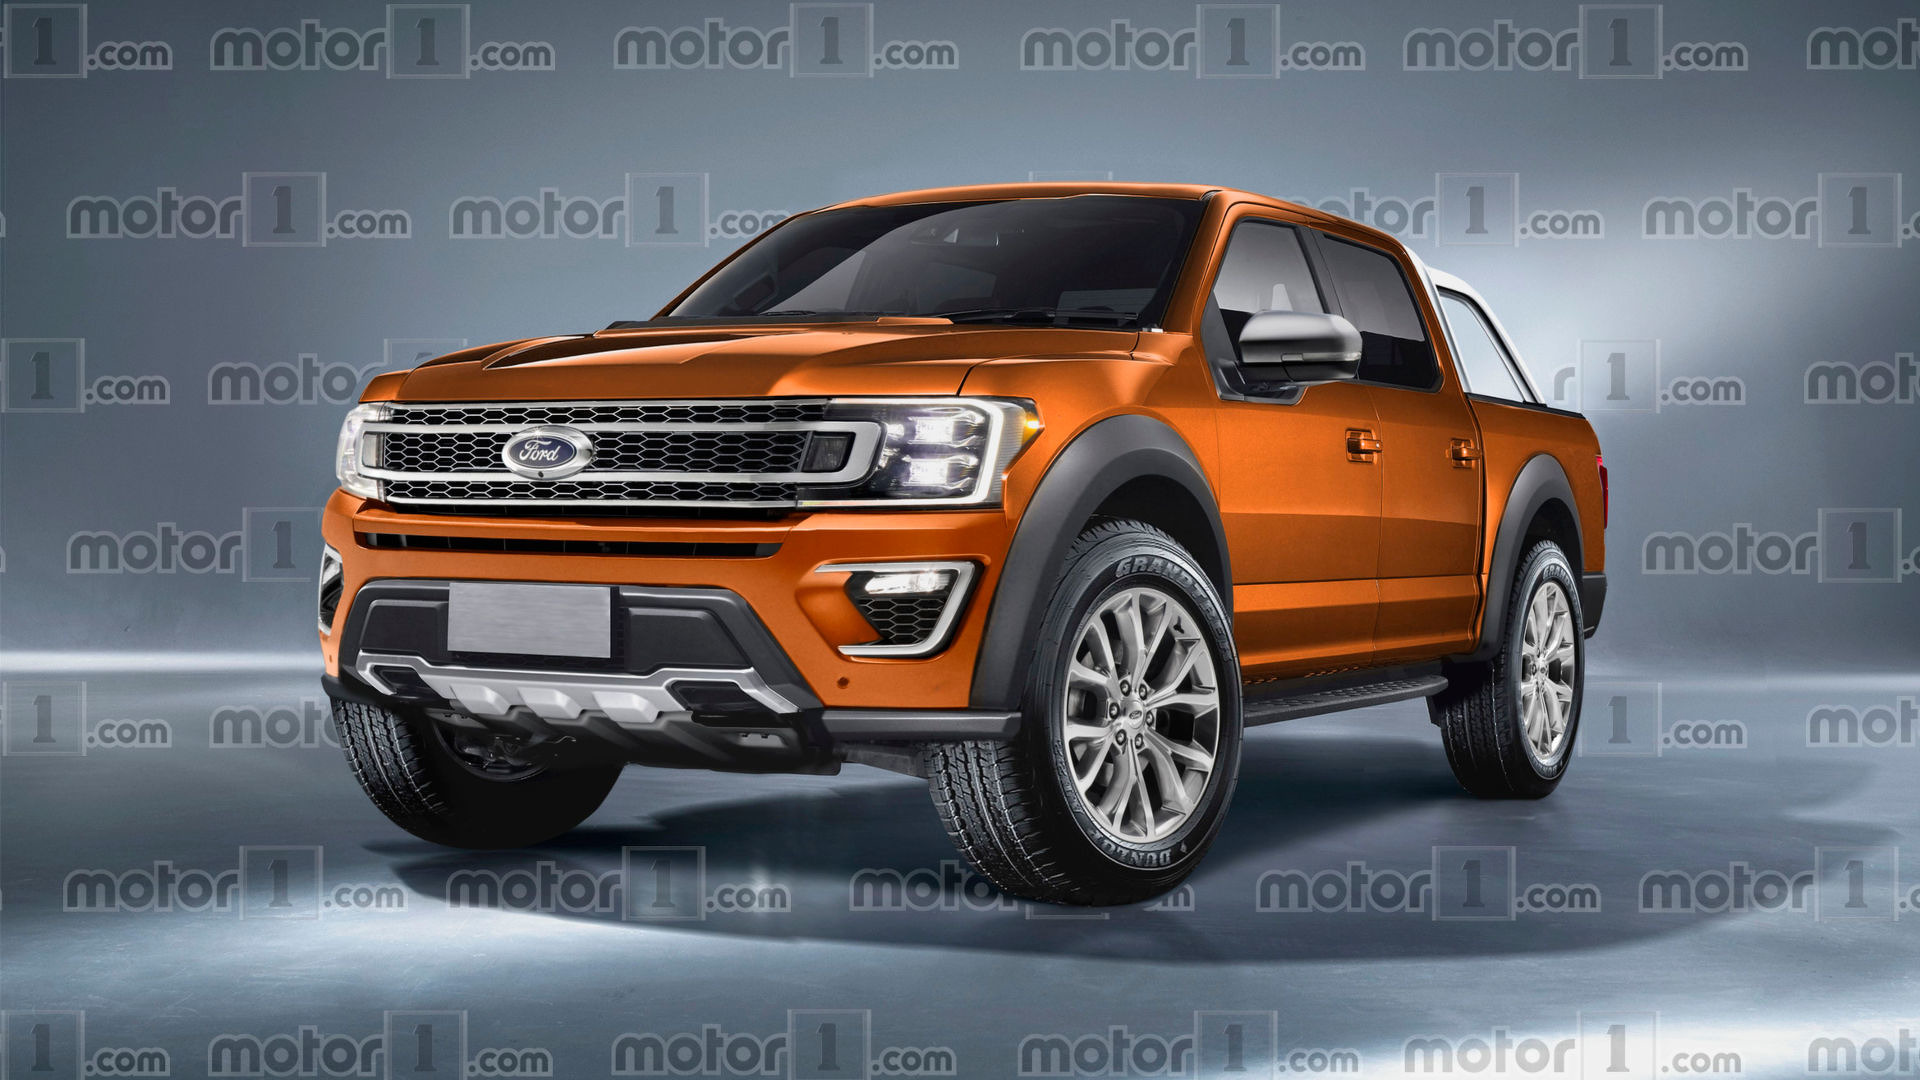 Ford Ranger 2019 >> 2019 Ford Ranger imagined as F-150's little brother